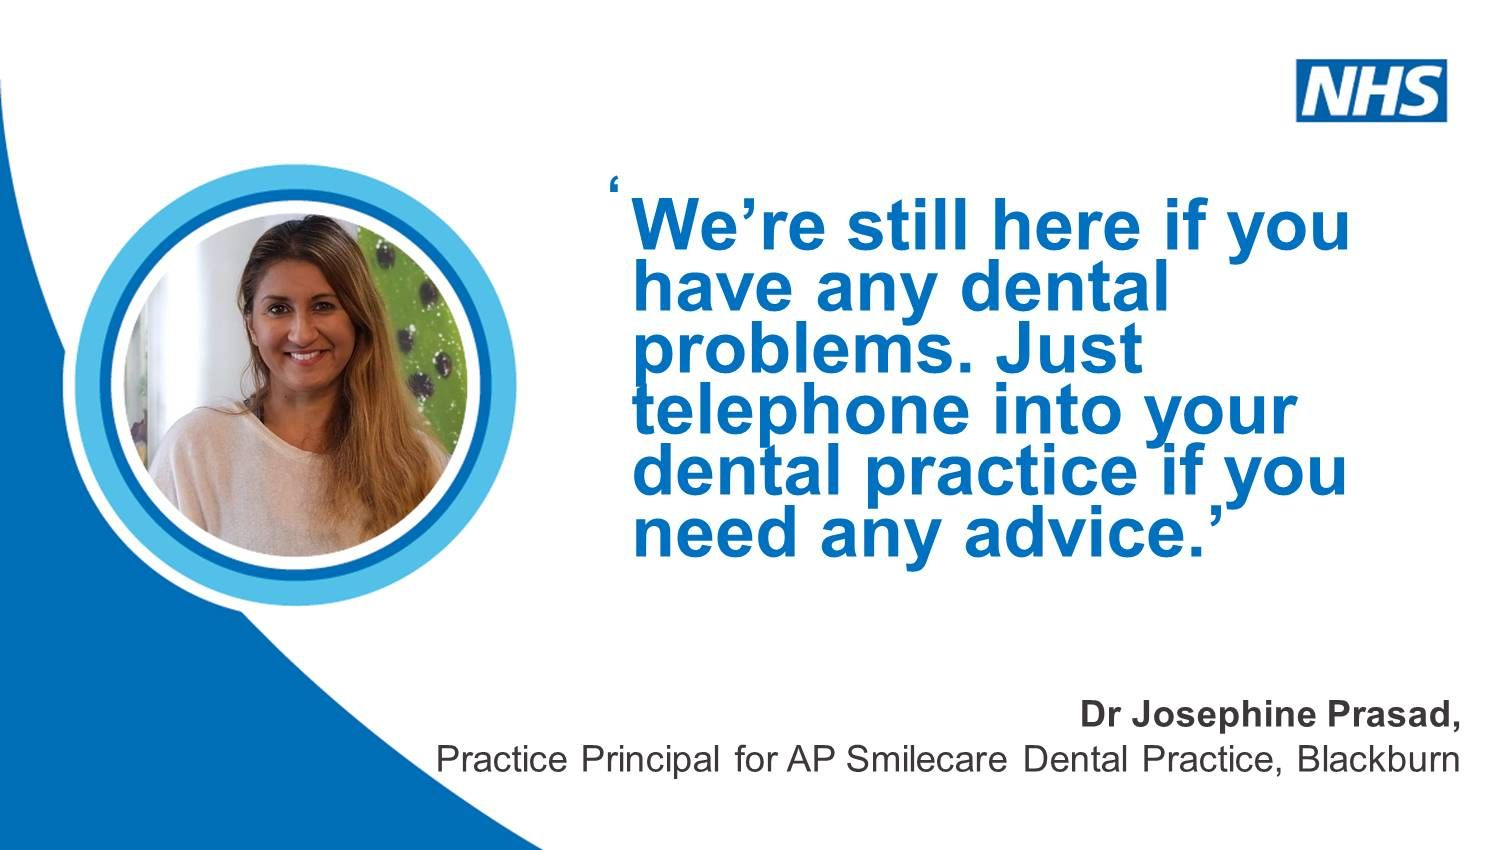 Dental services in Lancashire and South Cumbria are still here for you - Dr Josephine Prasad